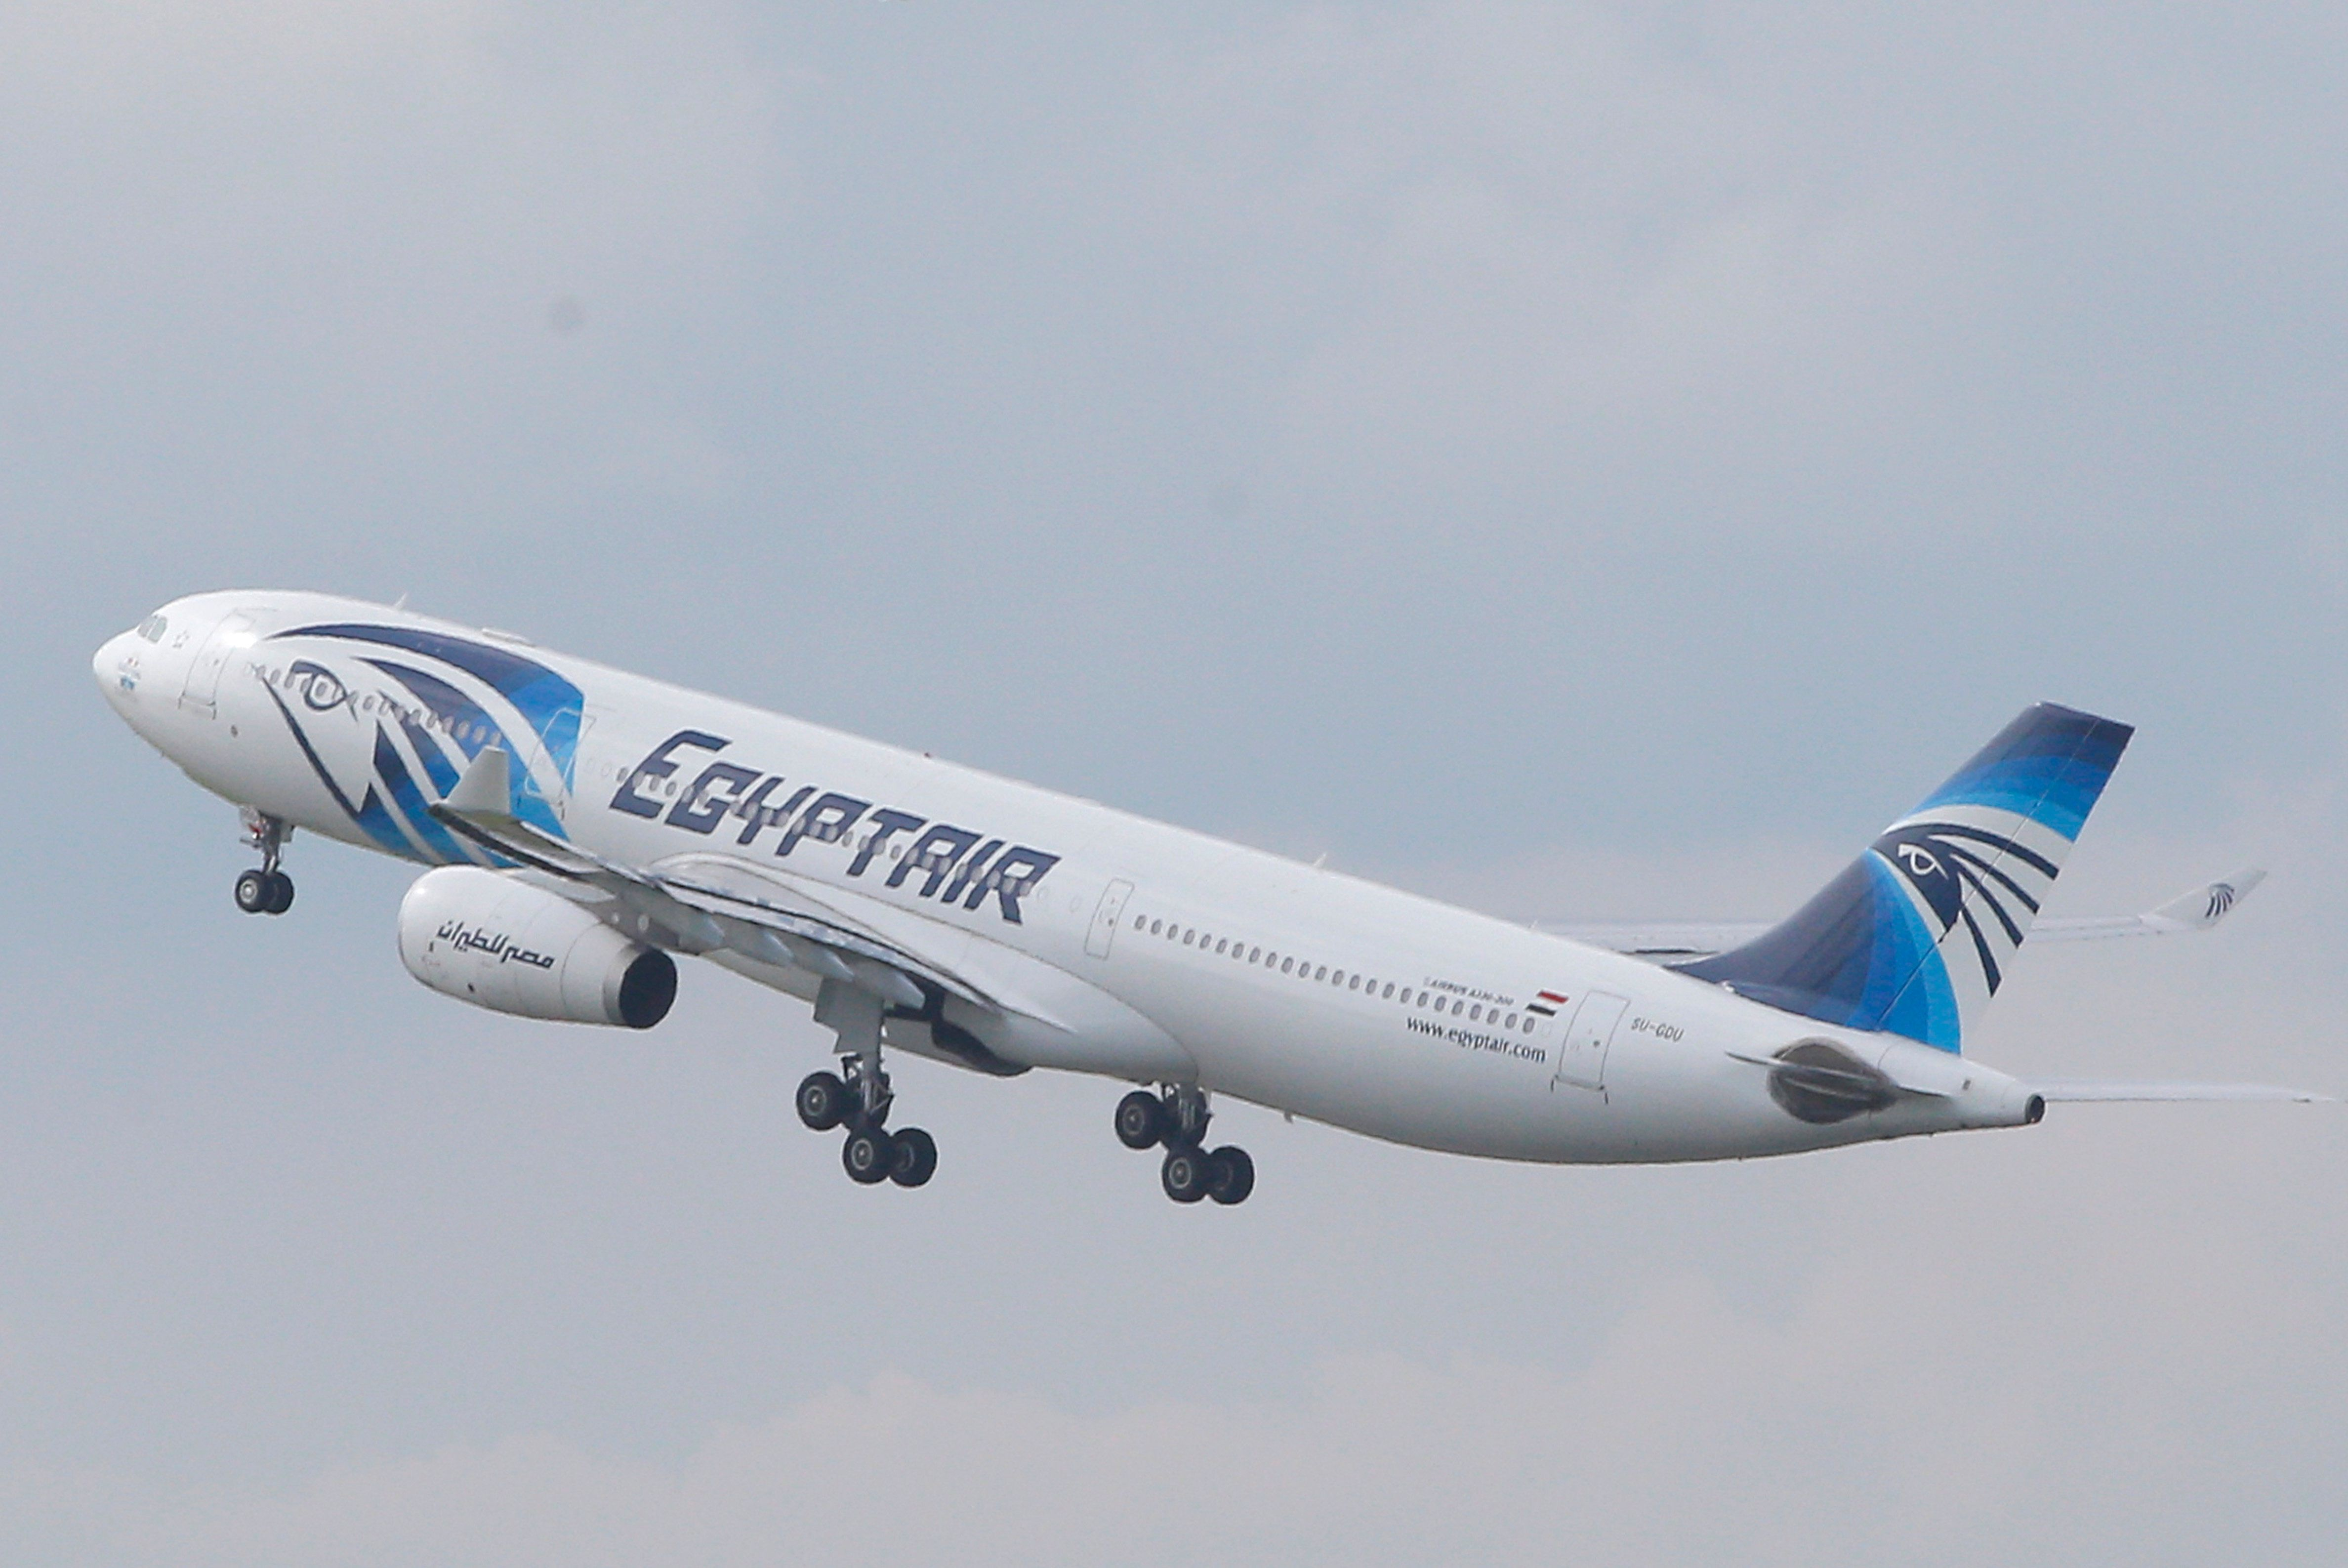 The EgyptAir plane that crashed killing 66 people on board had 'we will bring this plane down' scrawled...